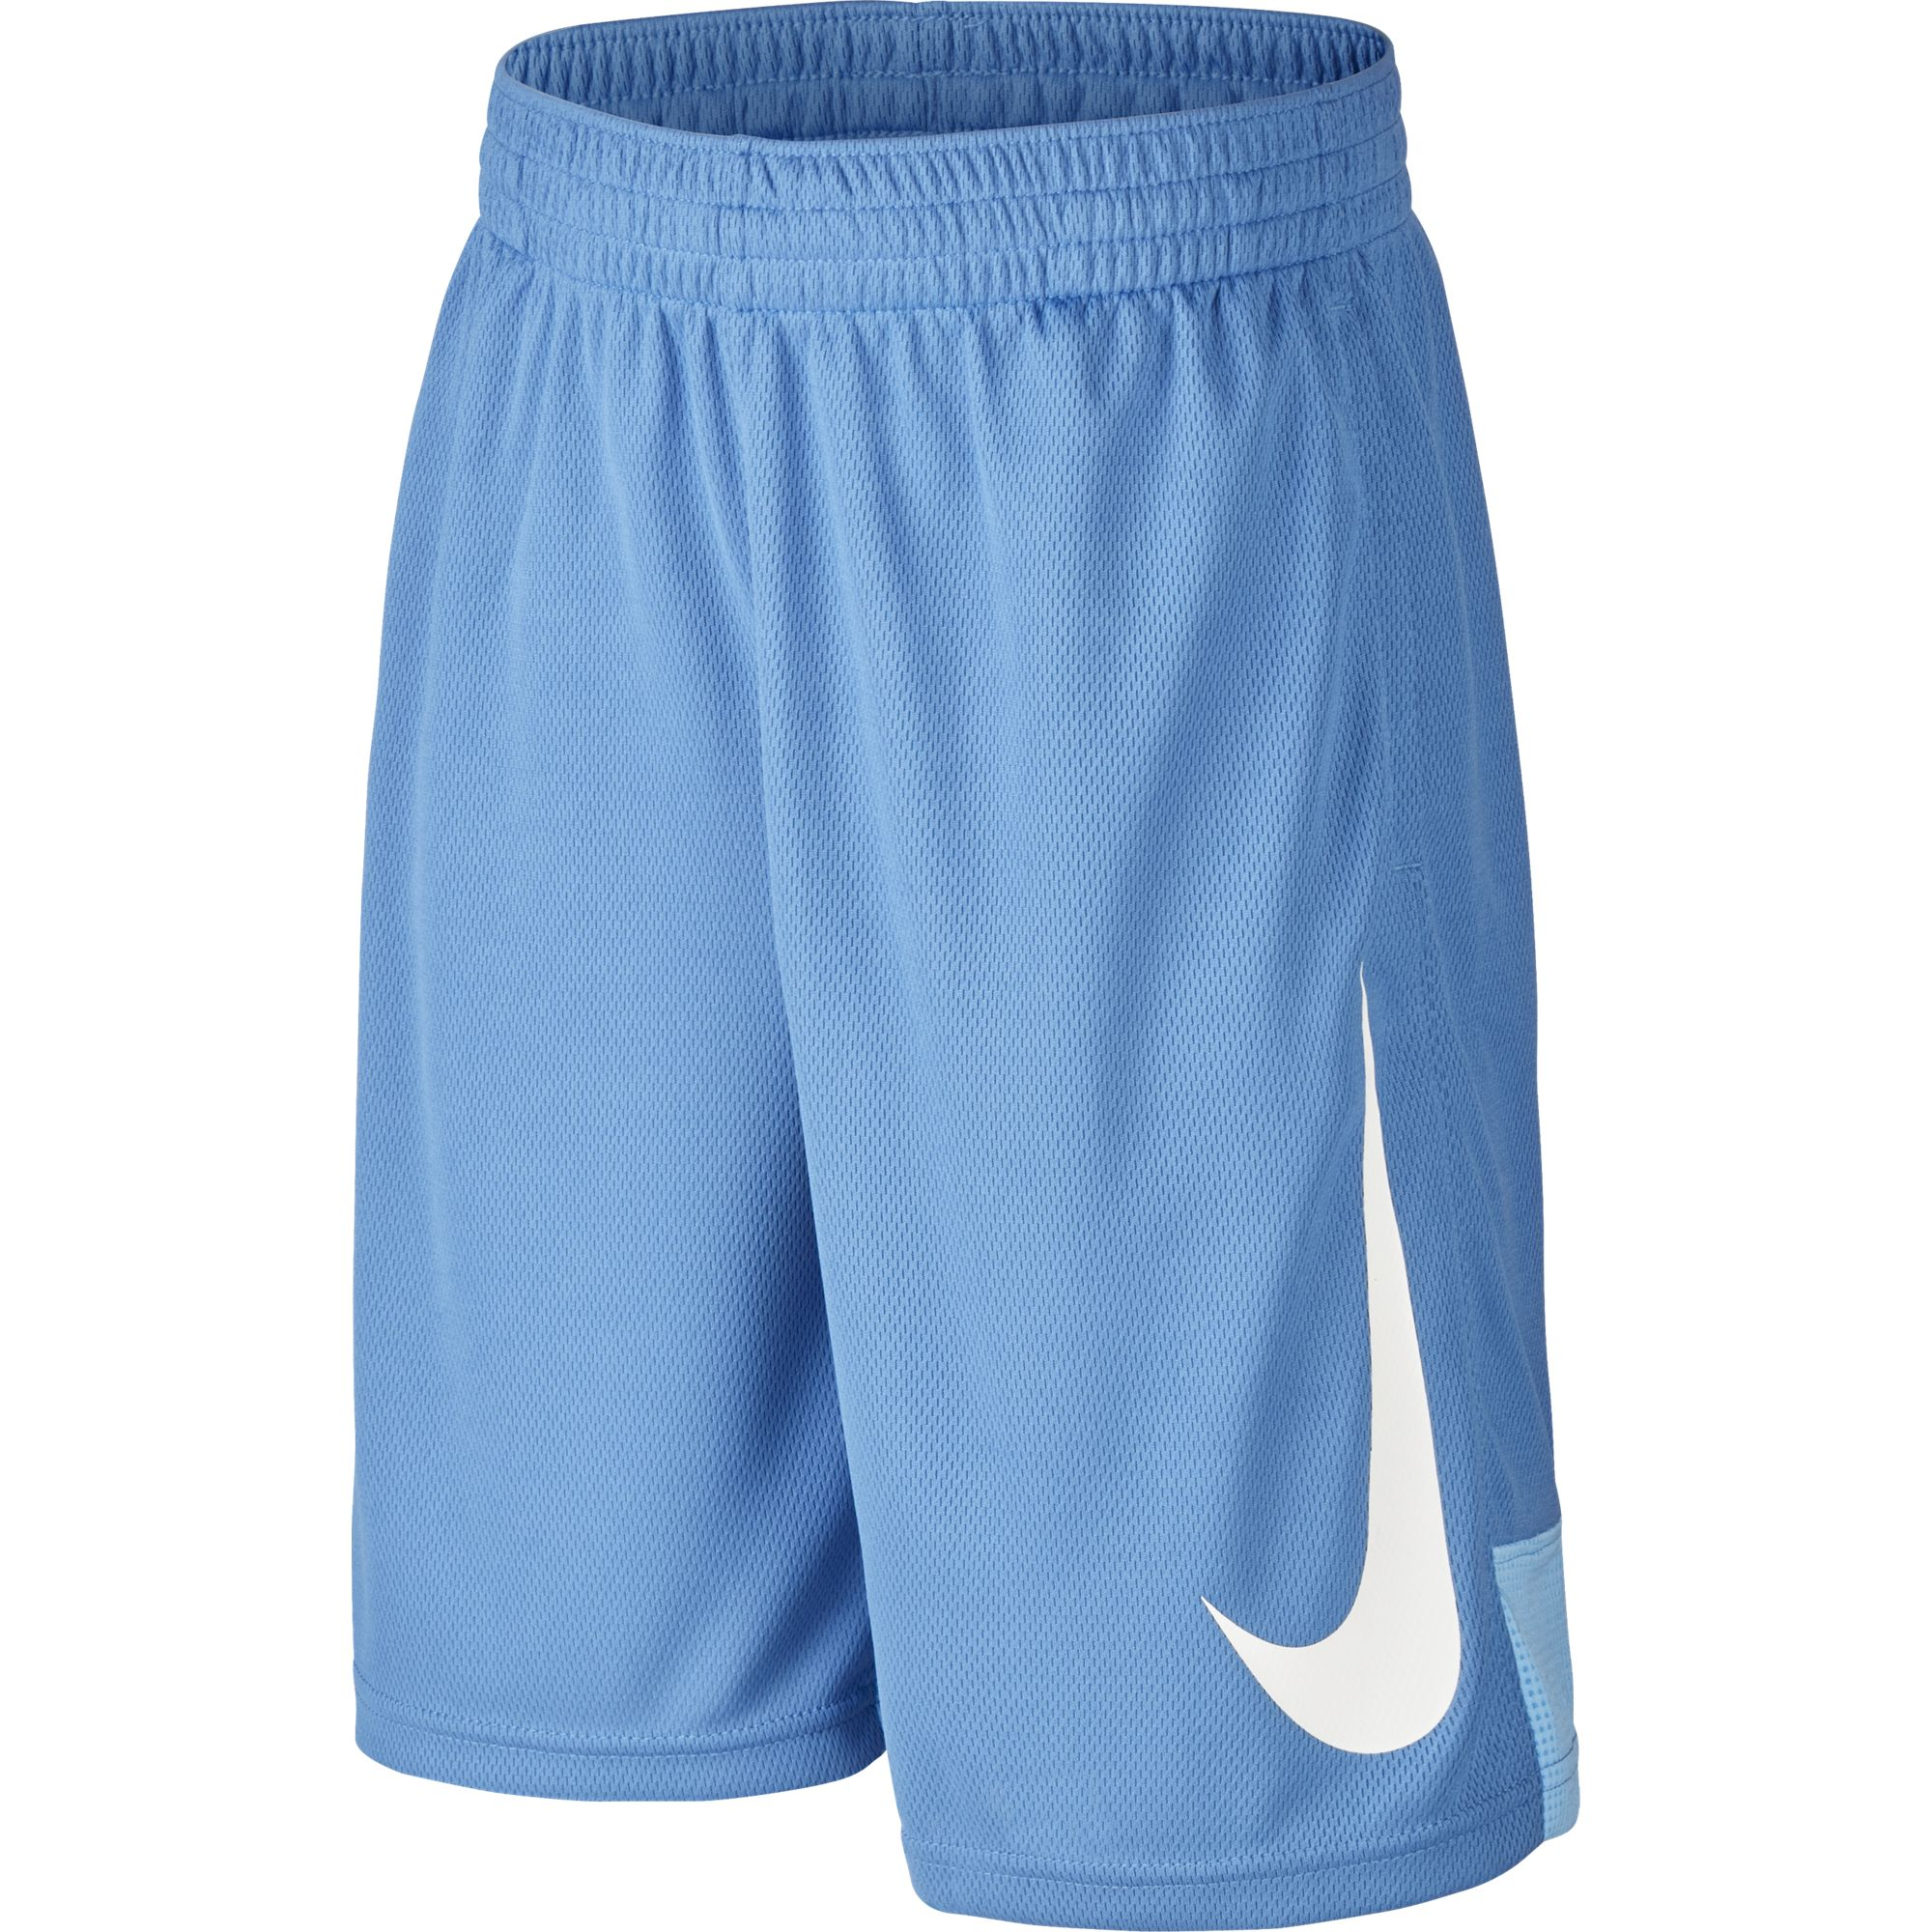 Nike Kids Dry Fit Basketball Shorts - NK-892362-489